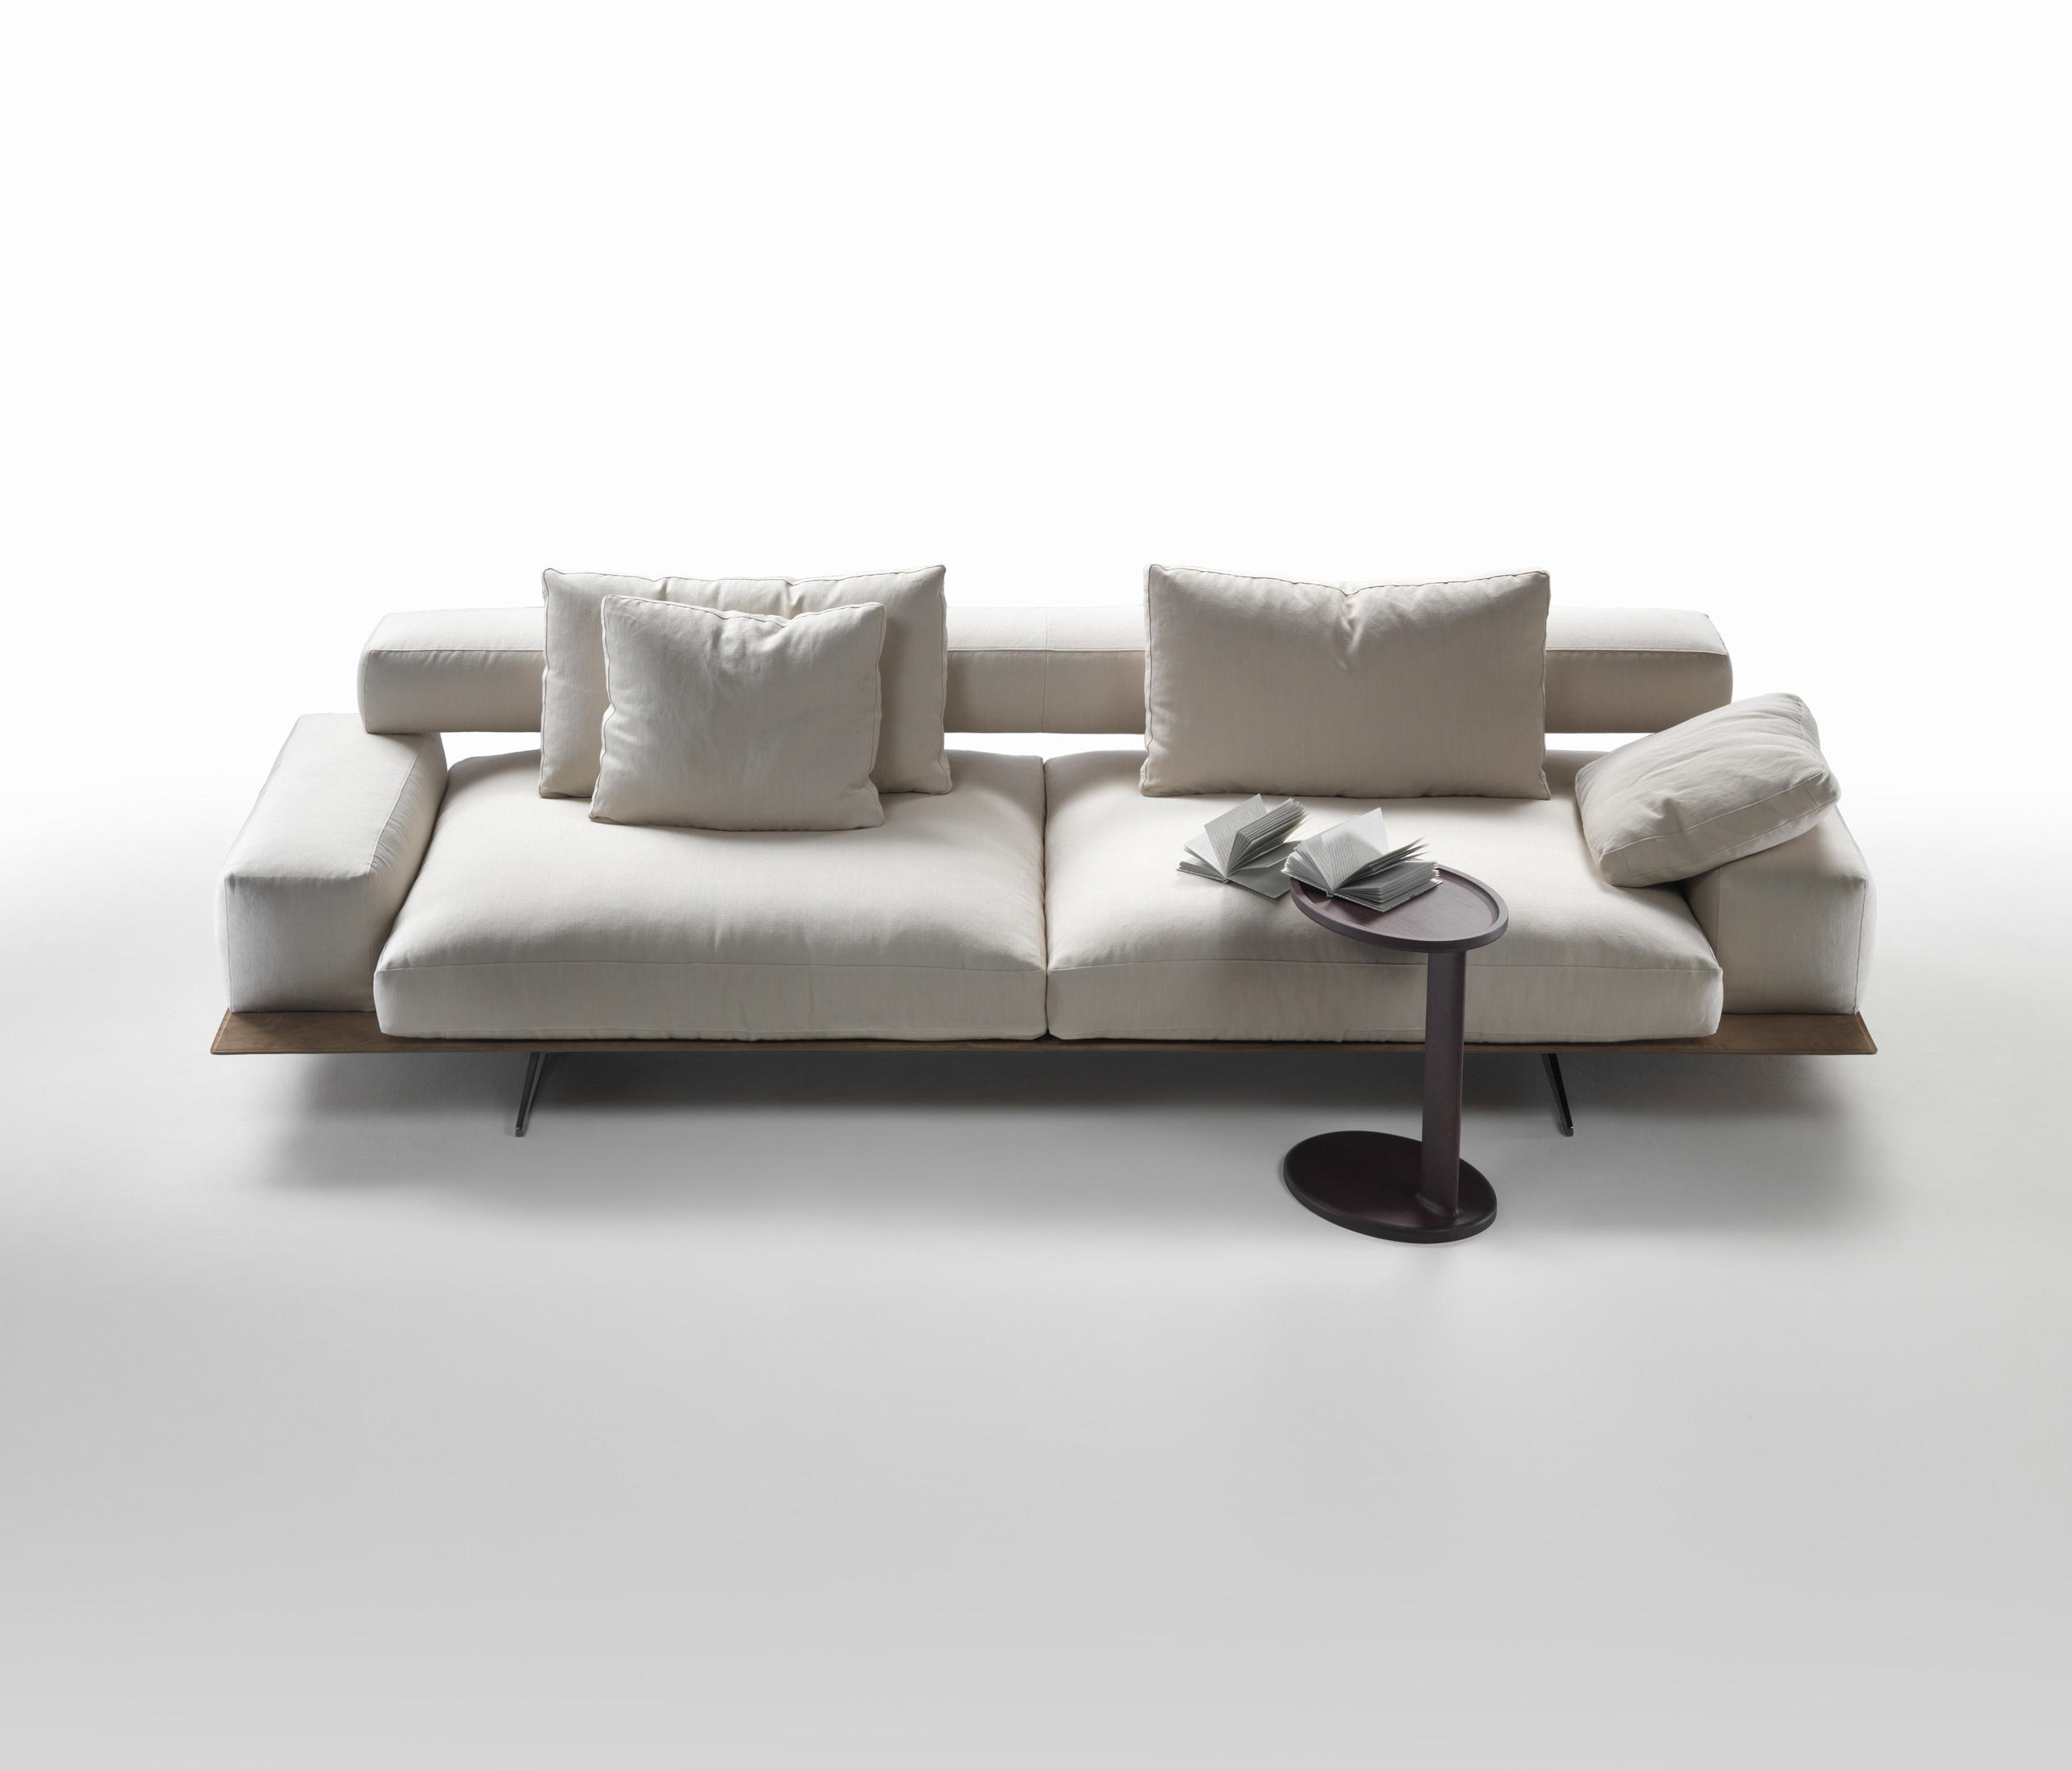 wing  lounge sofas from flexform  architonic -  wing by flexform  lounge sofas